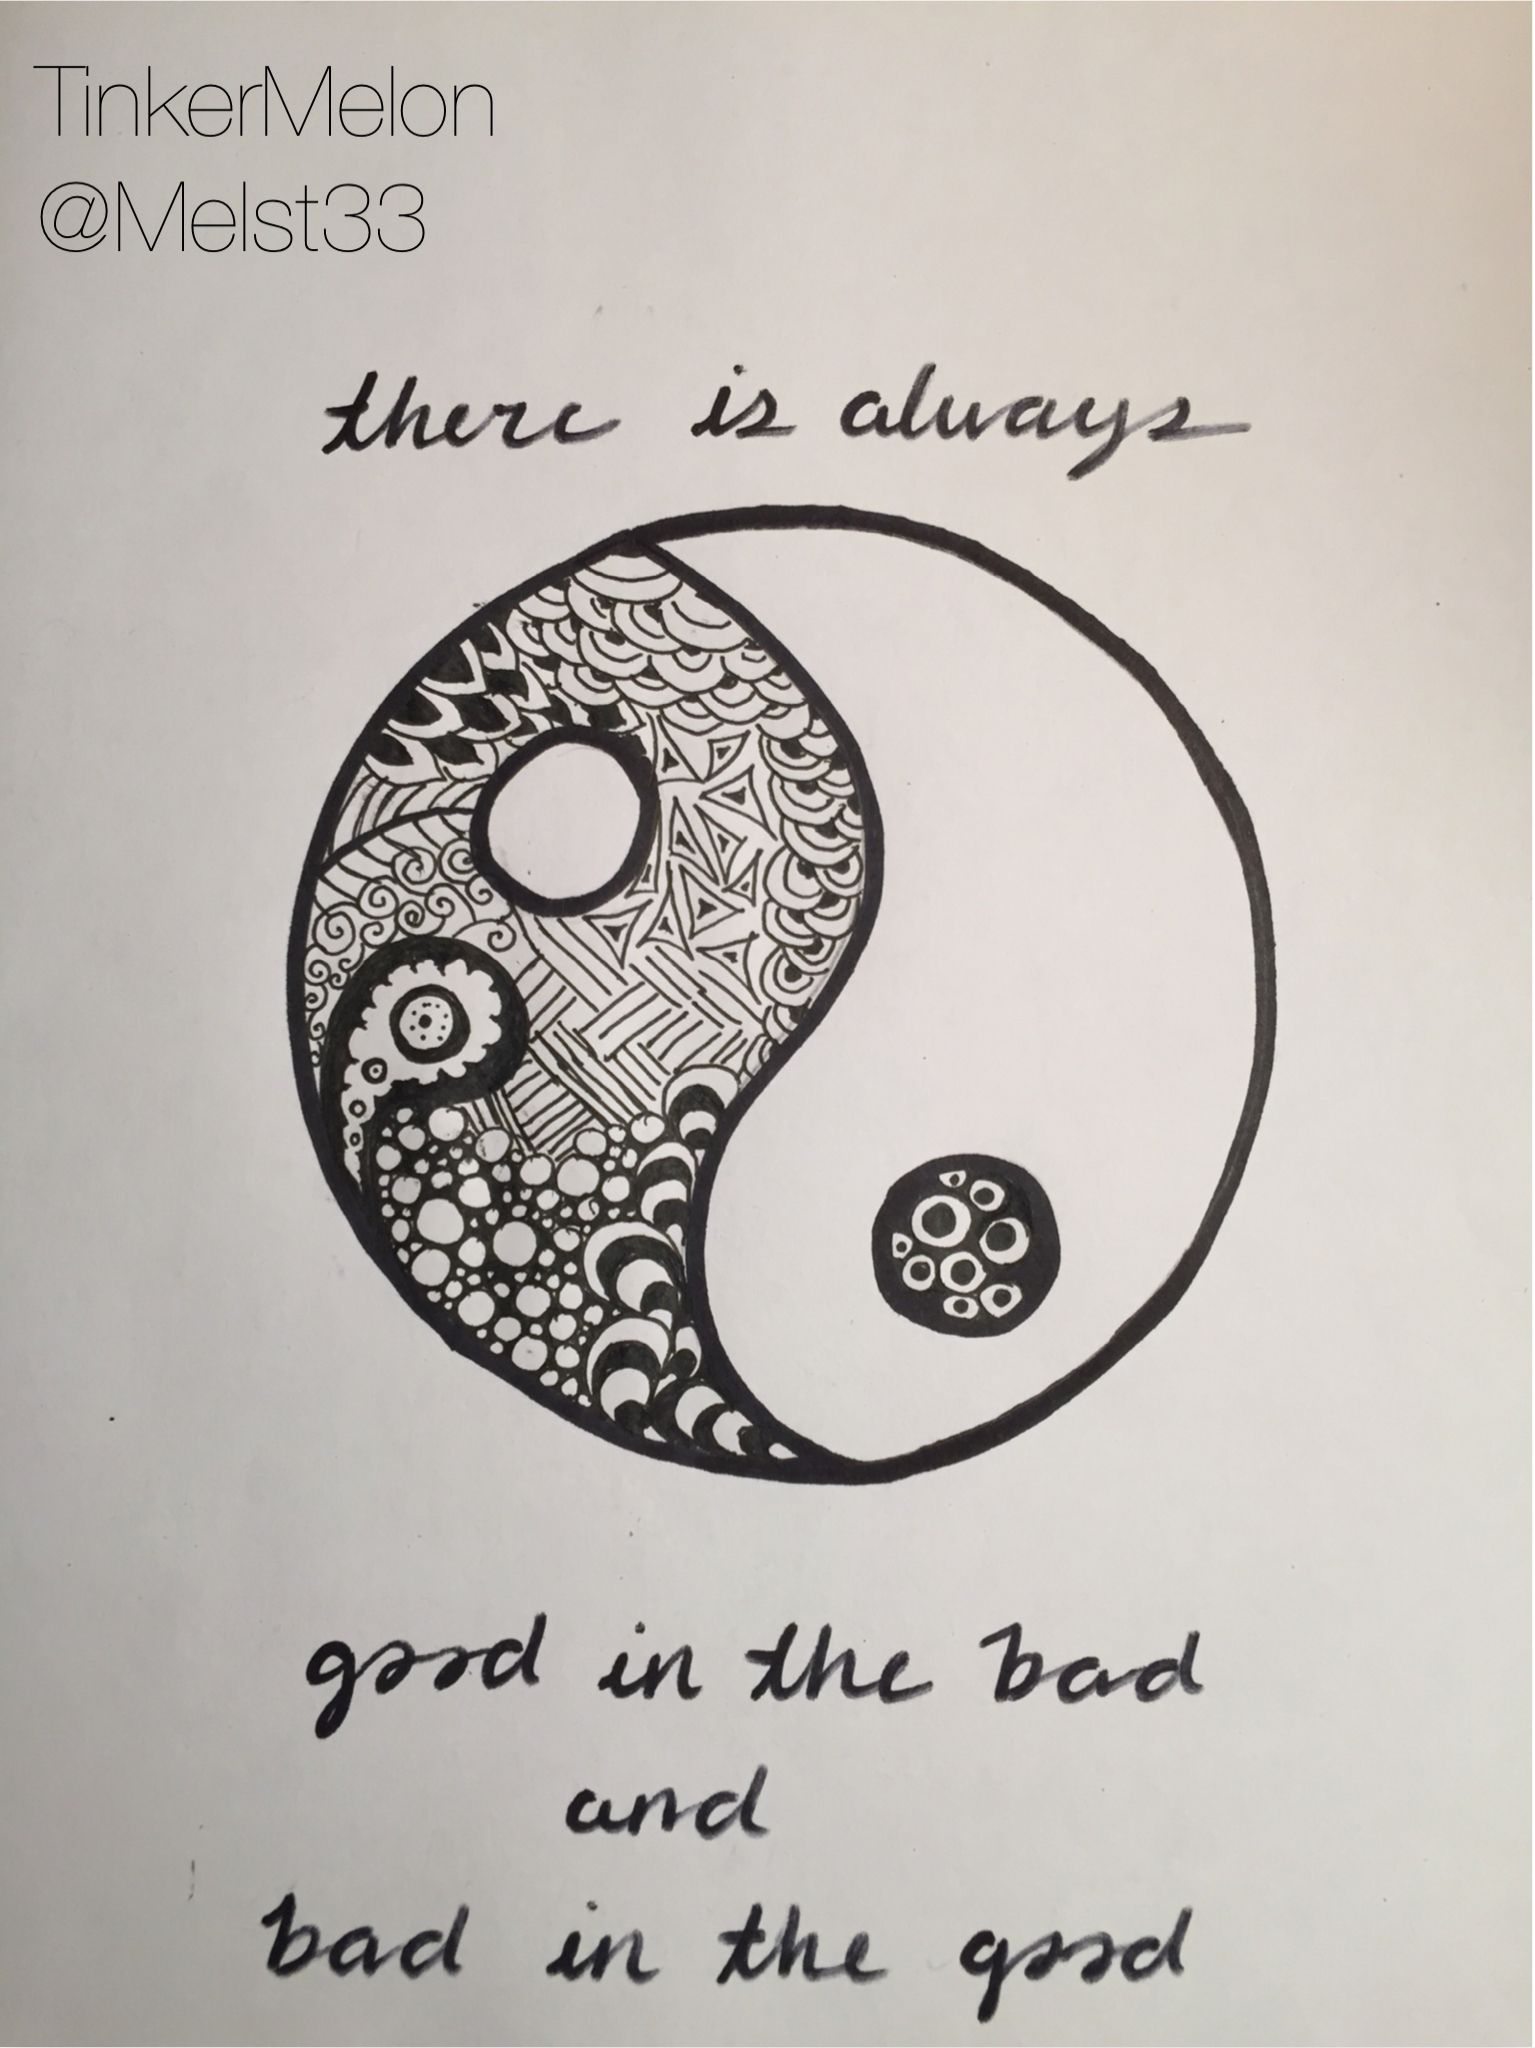 Citaten Kunst Yang Bagus : I love yin and yang l want a tattoo but